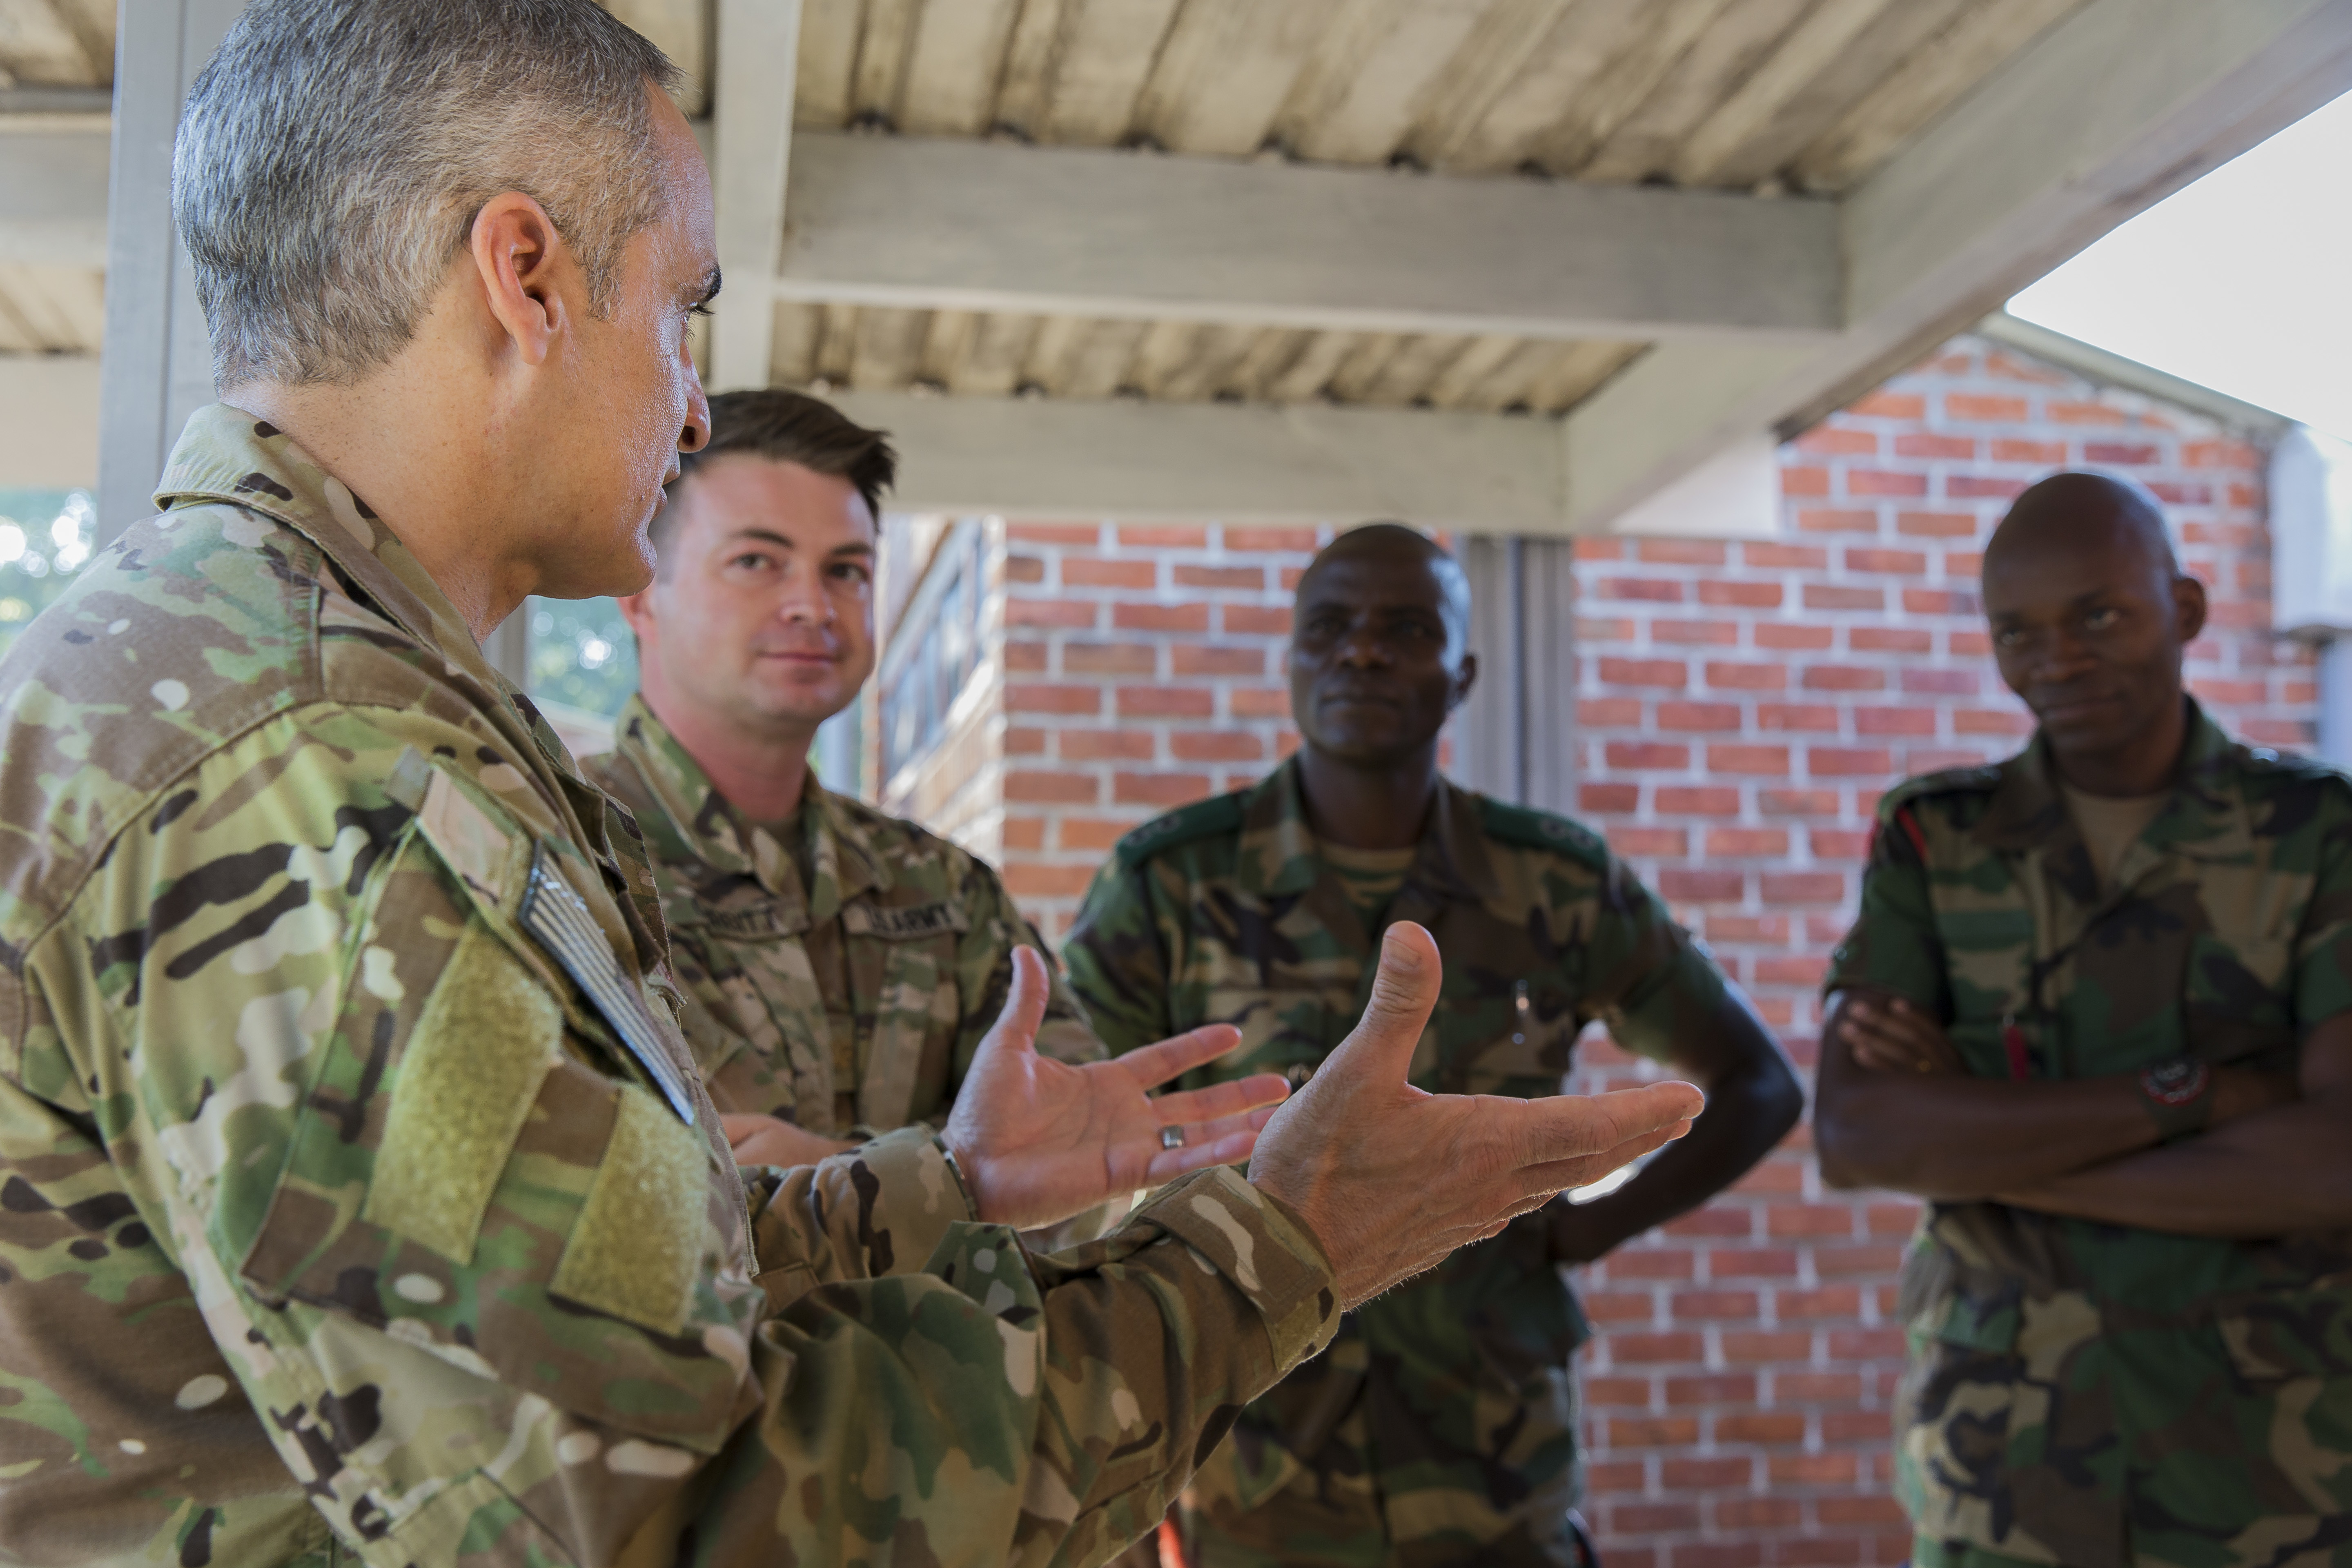 U.S. Africa Command Senior Enlisted Leader Command Chief Master Sgt. Ramon Colon-Lopez meets with key leadership at the Malawi Armed Forces College Sergeant Major Academy in Malawi, Africa, June 1, 2018. Colon-Lopez travelled to Malawi to meet with the Malawi Defence Force, engaging with both senior officer and enlisted leadership as part of a three-day tour. The visit included a follow-up on issues addressed by the MDF during the Africa Senior Enlisted Leader Conference in November 2017, as well as assess the MDF's capability to train and sustain Peace Keeping Operations Forces.